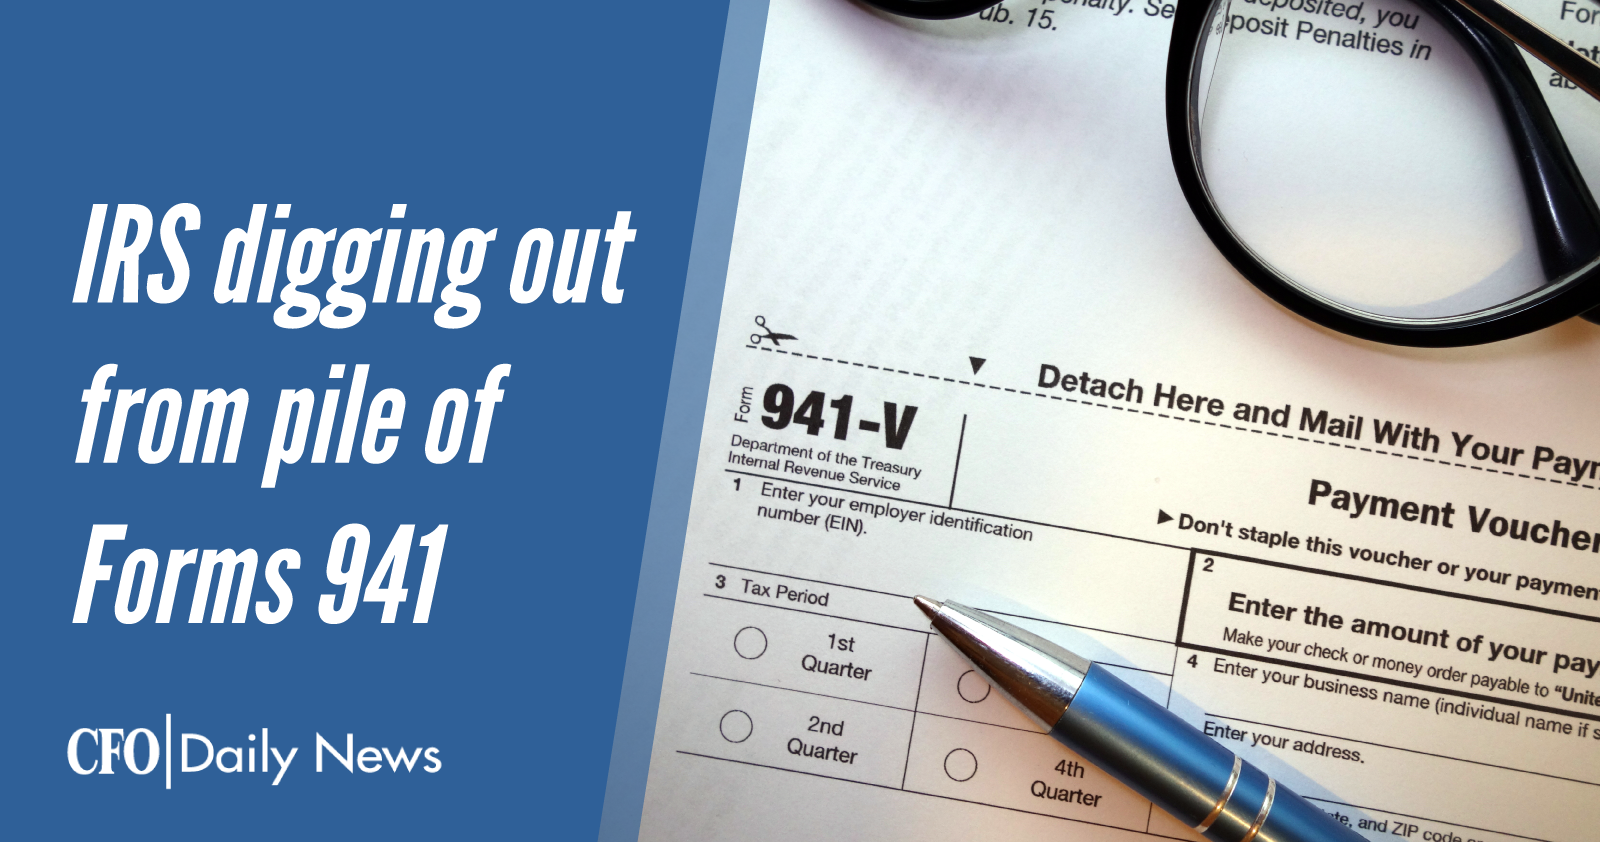 irs digging out from pile of forms 941